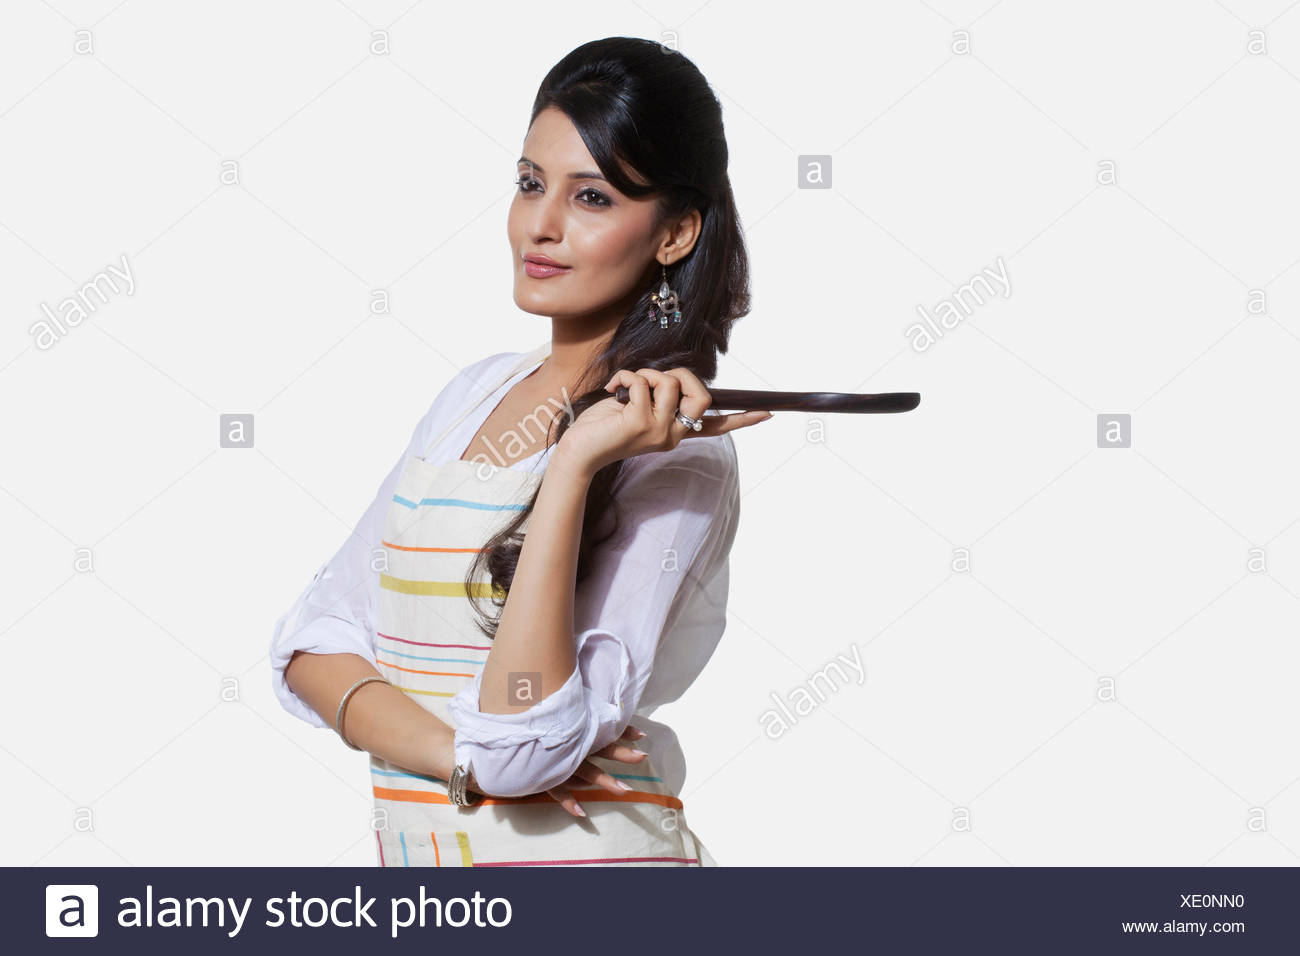 Woman with a cooking utensil - Stock Image